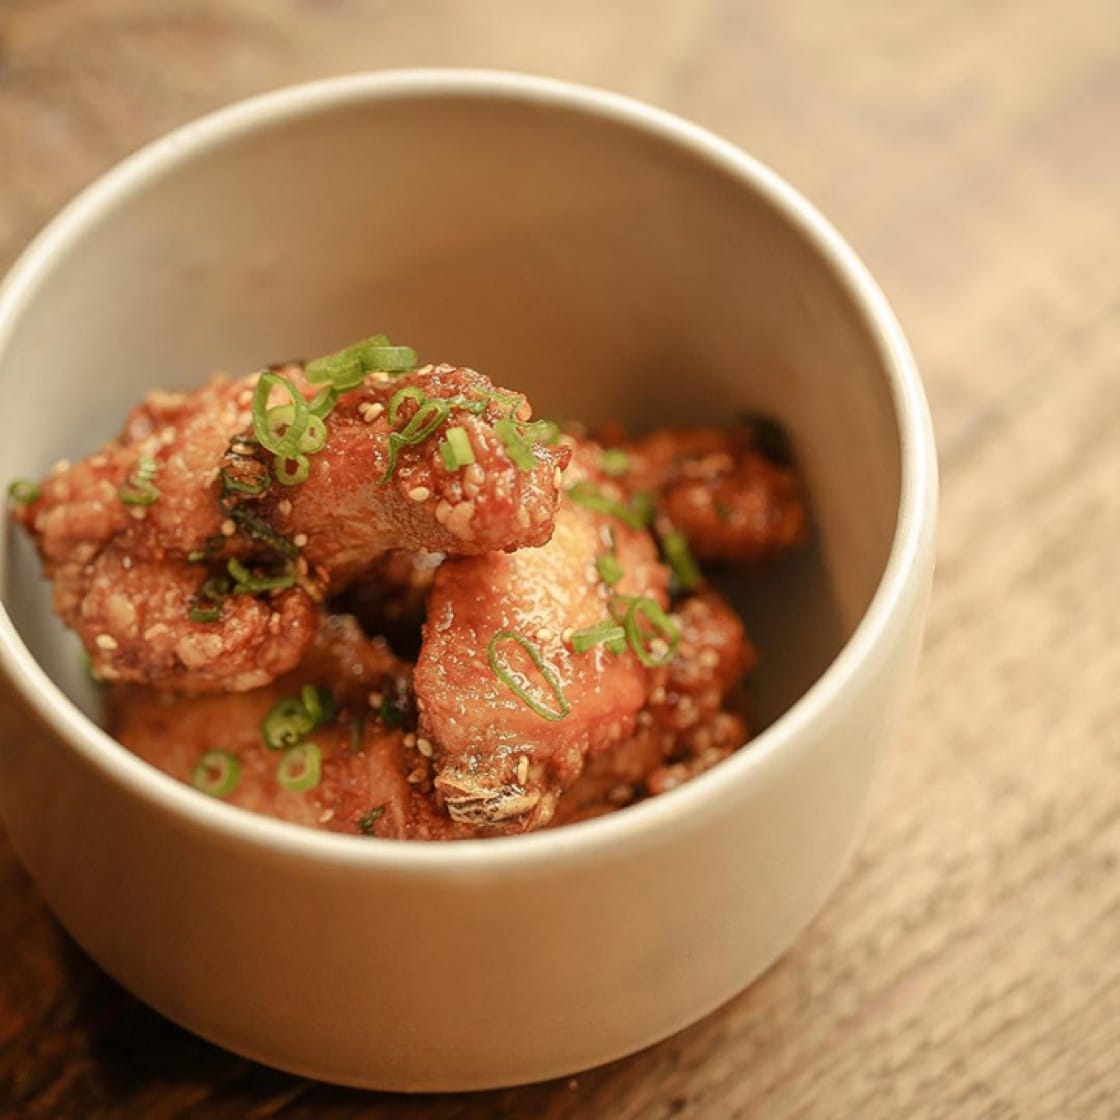 Korean fried chicken wings with garlic and ginger at The Snug. (Photo courtesy of The Snug.)